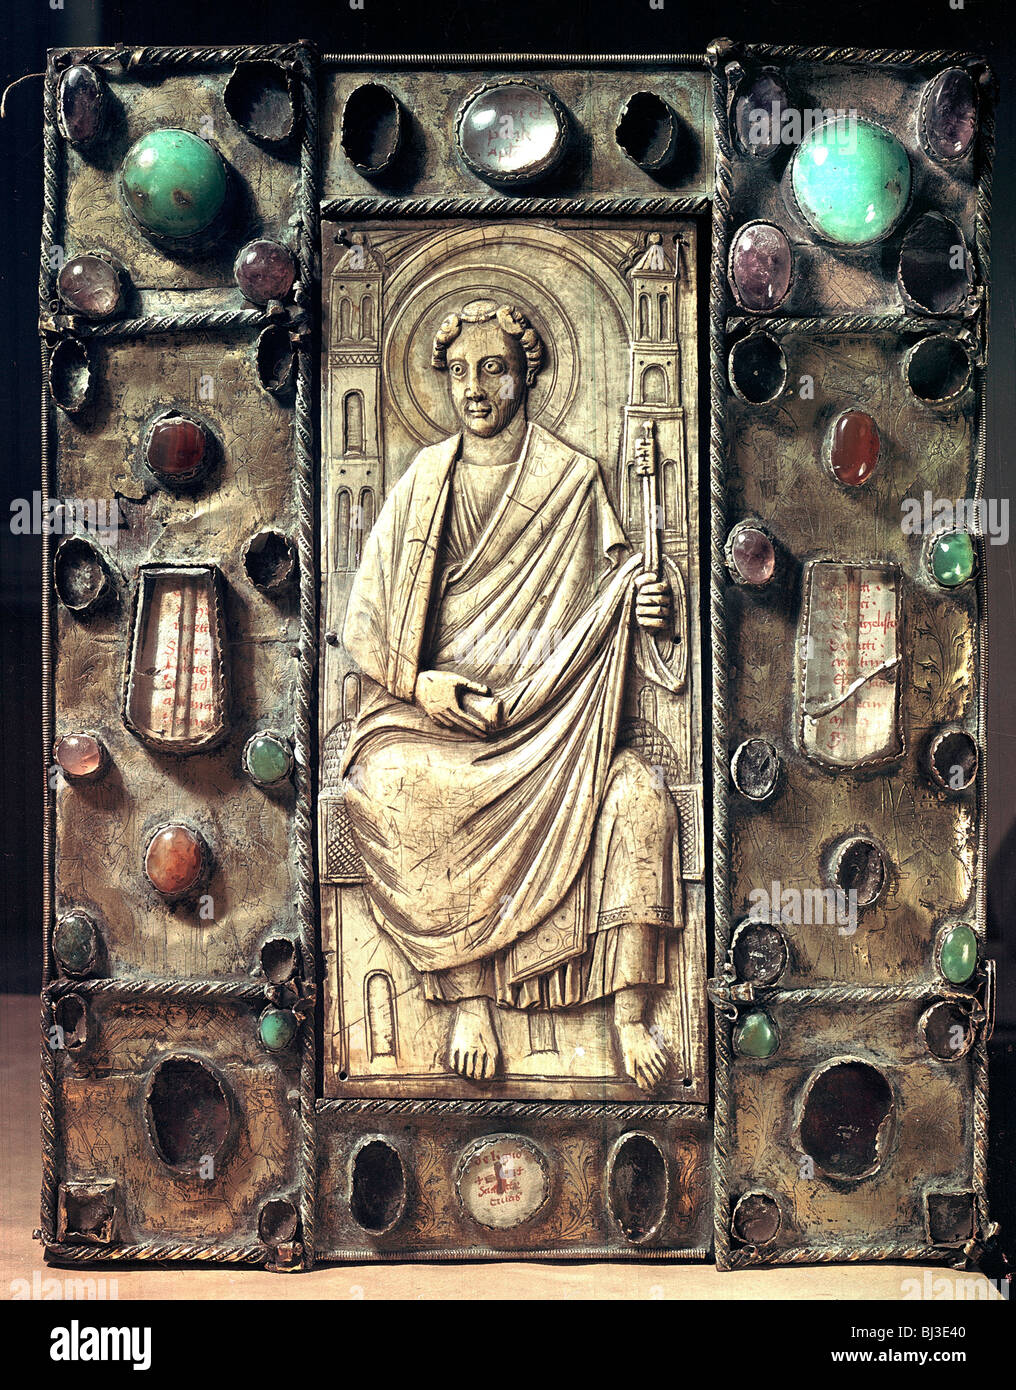 Gilded copper reliquary cover of an evangelistary, 4th-9th century. Artist: Werner Forman - Stock Image